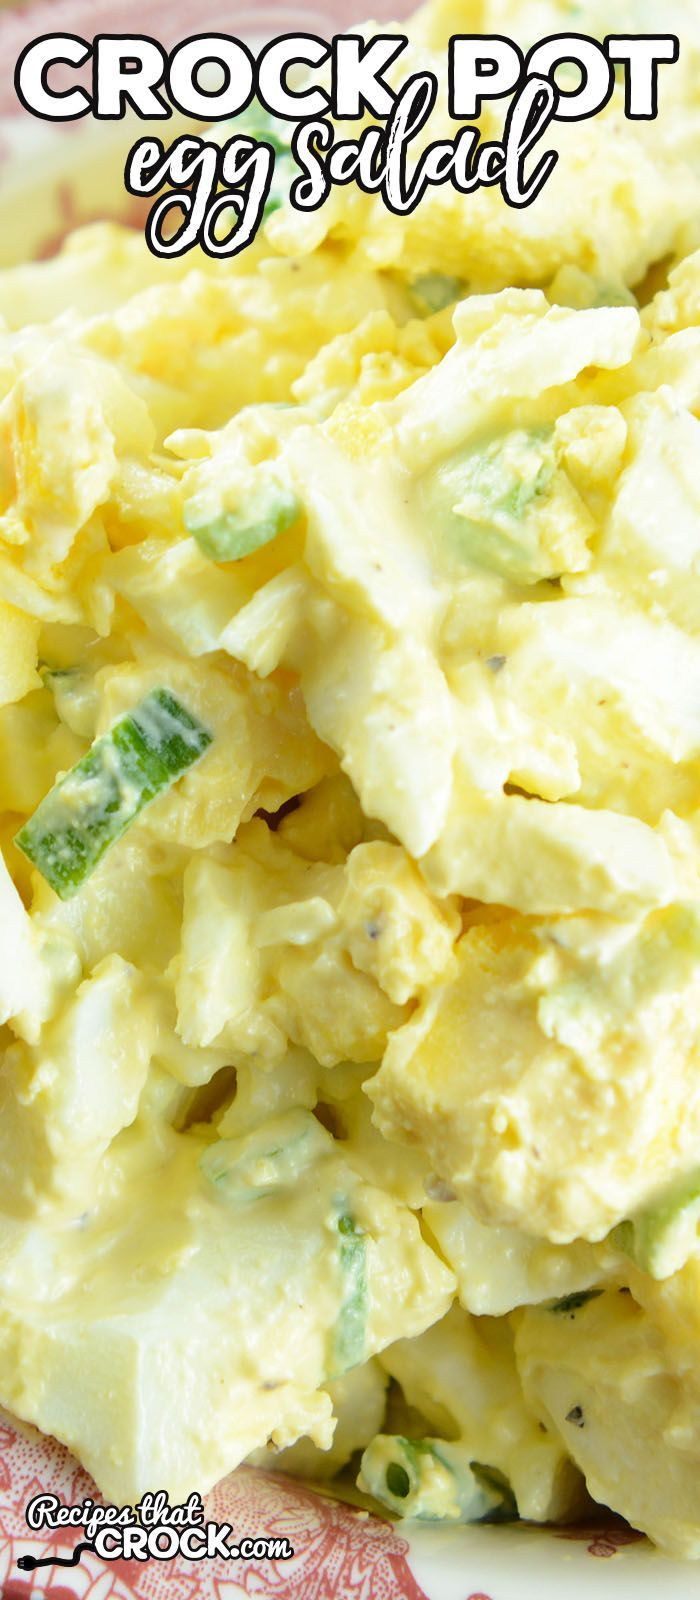 Us potato cuts jpg thanksgiving dinner at restaurant 9501 - Are You Looking For An Easy Way To Make Egg Salad Our No Peel